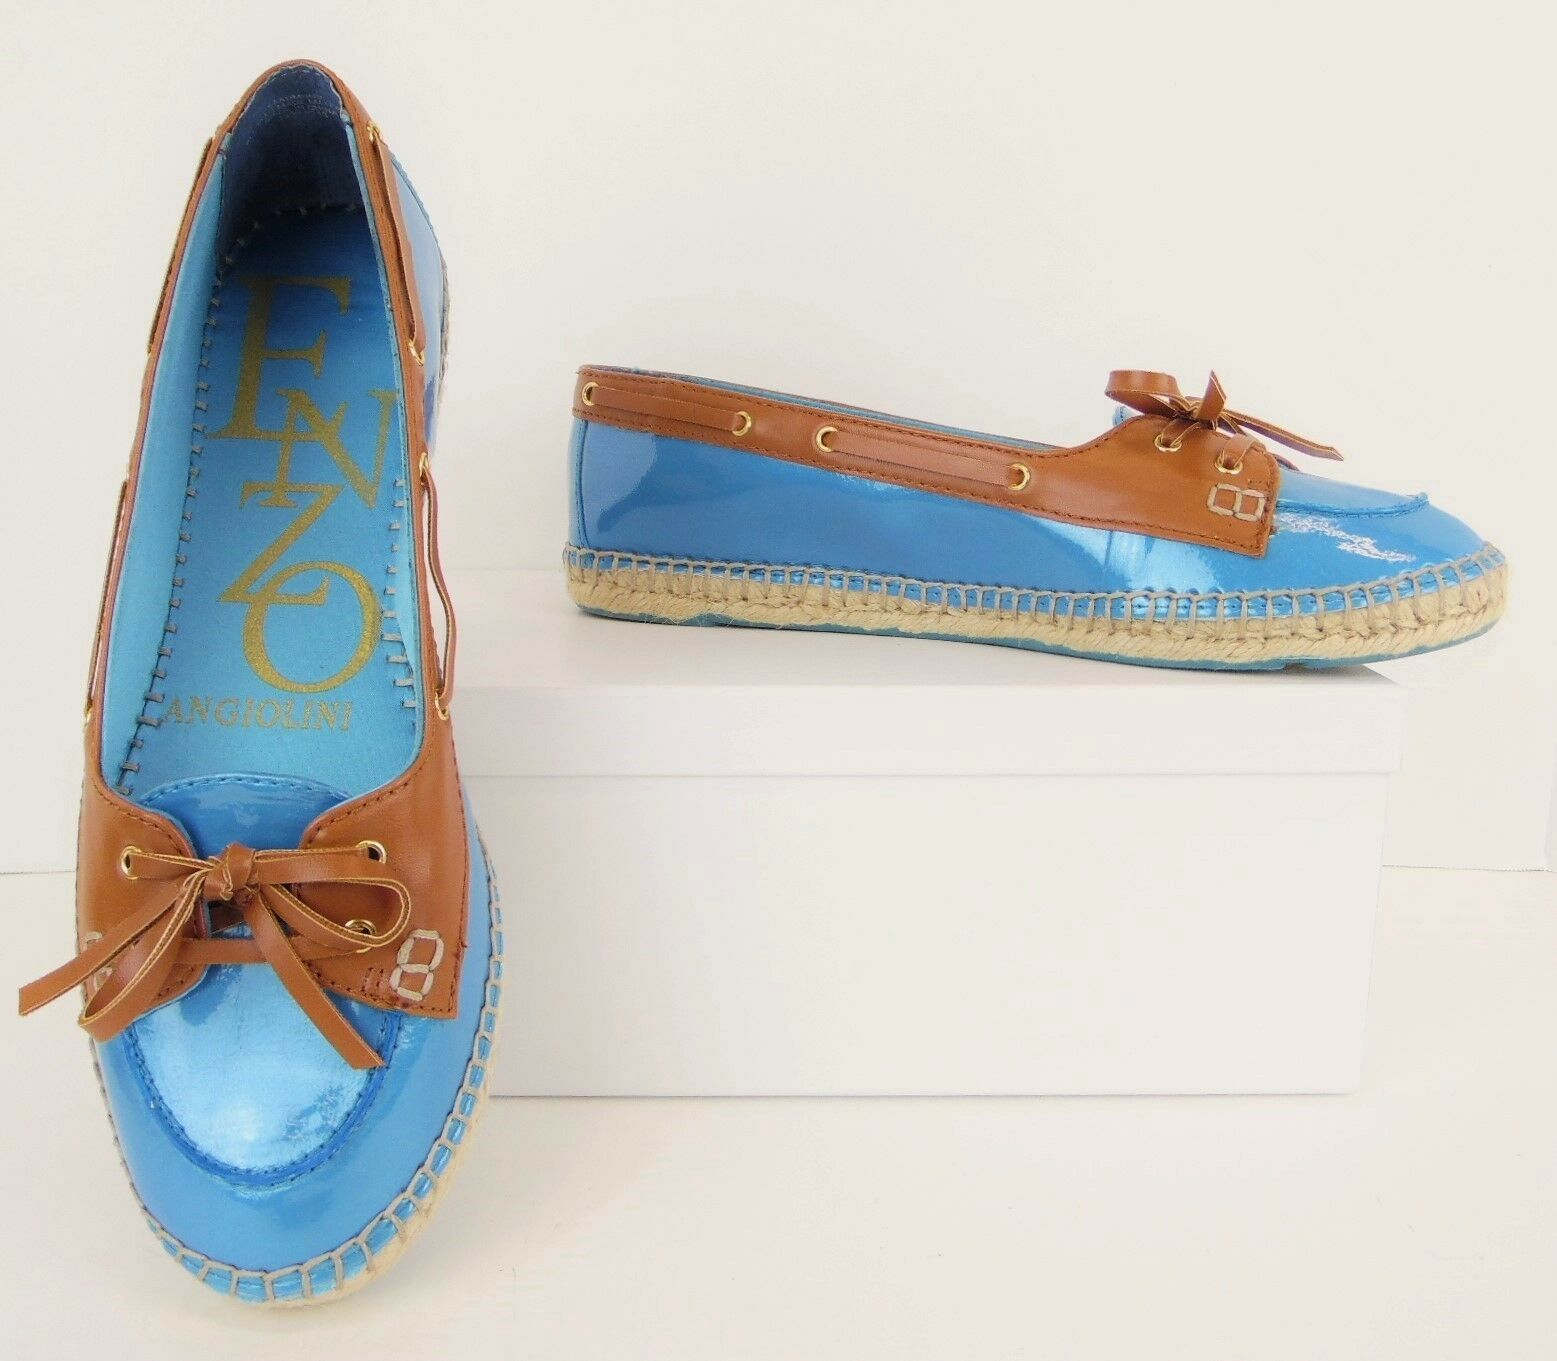 NWOB Enzo Angiolini Blau + Tan Espadrille Flats Loafers Boat Schuhes 9.5M (S180)